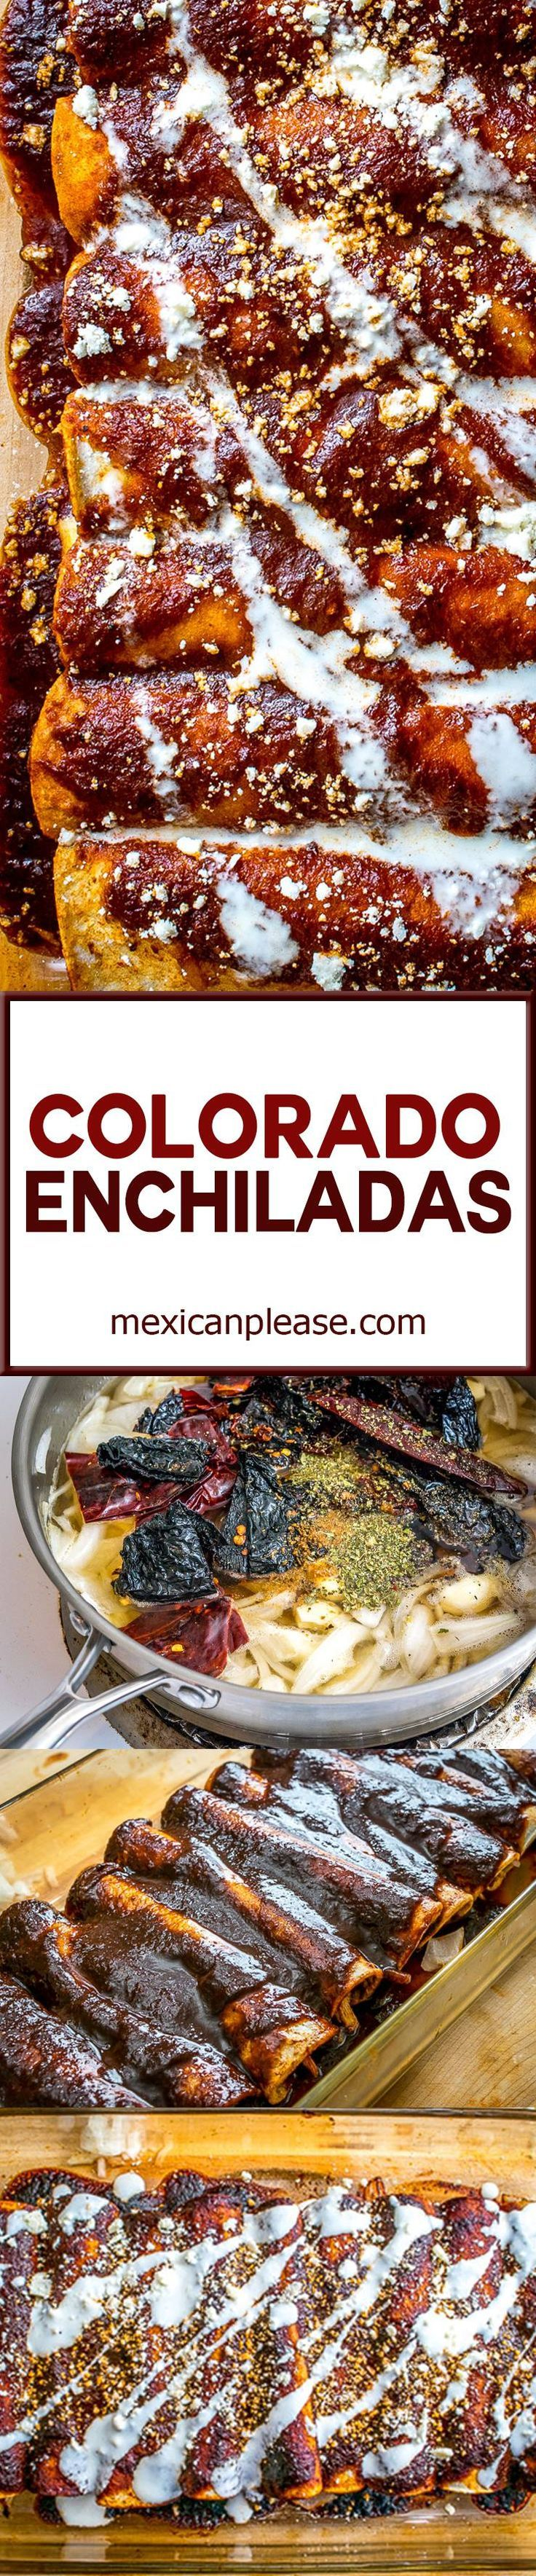 Ancho and New Mexican dried chiles combine with adobo sauce and a sliver of chocolate to create an unbelievably satisfying Colorado sauce.  Serve it up in classic enchilada style and you've got a dish you can't get anywhere else in your town, or state, or country.  Enjoy!  http://mexicanplease.com